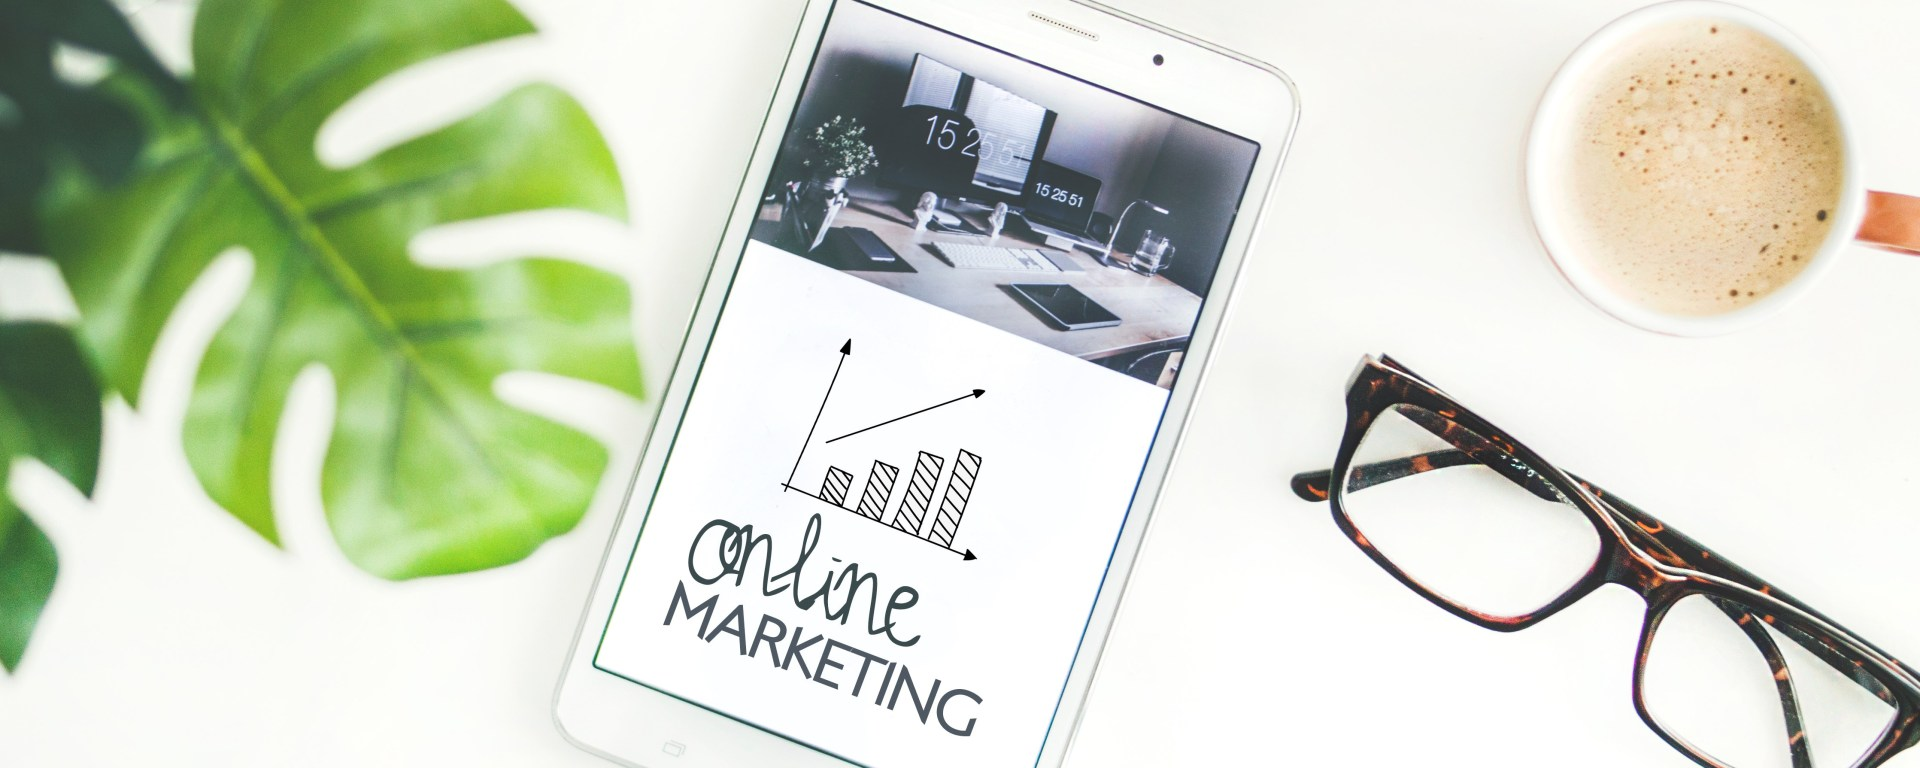 Digital Marketing Trends you need to know before 2020